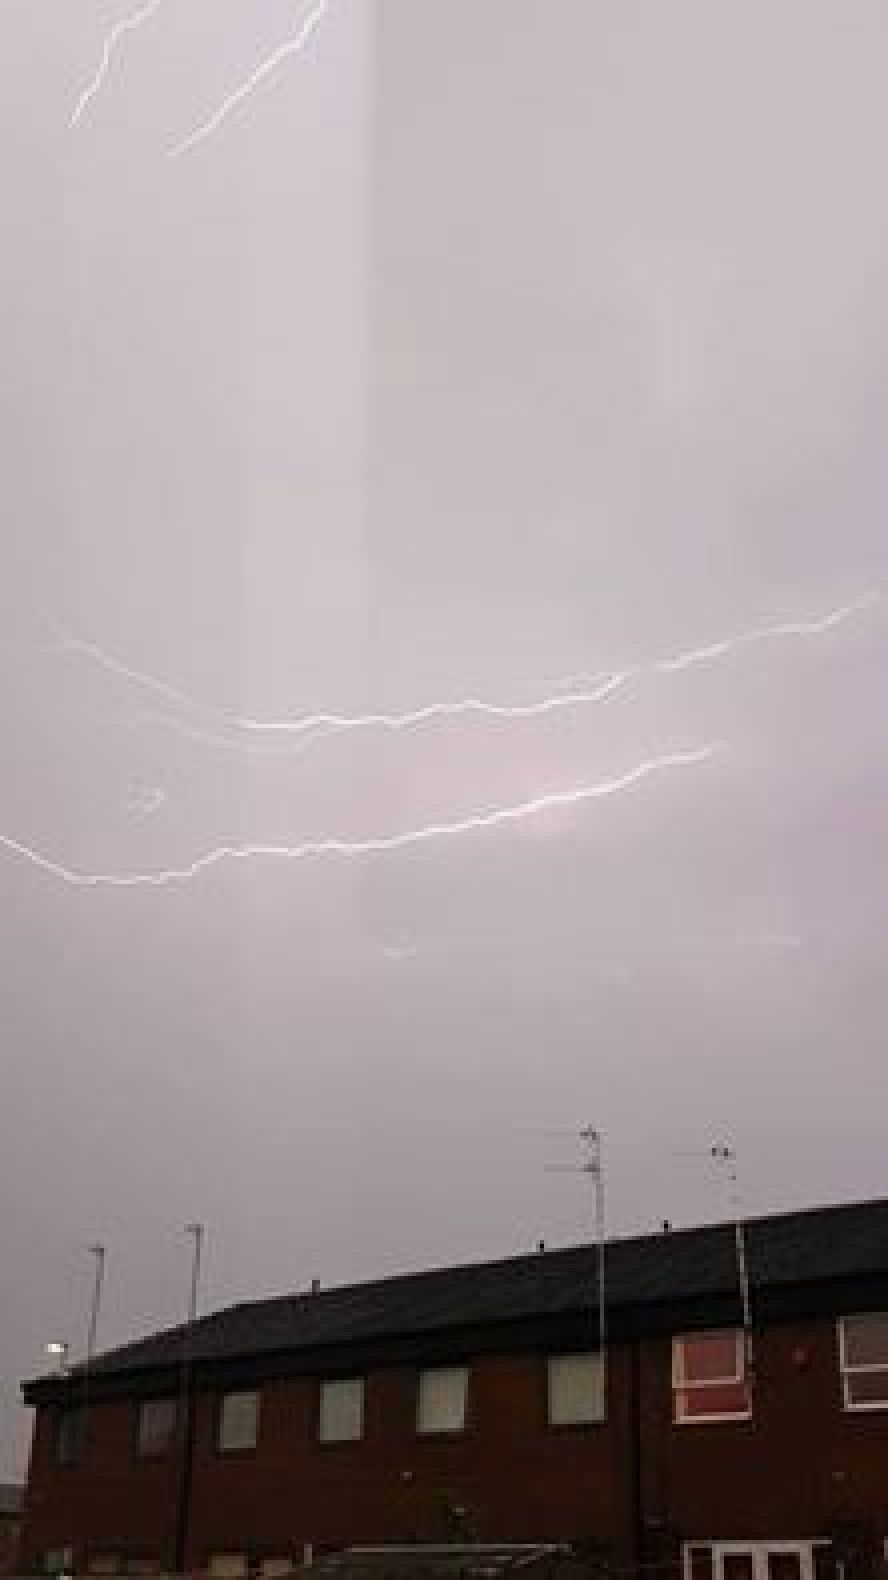 Lightning strike over Salford M5 - By Donna Massey